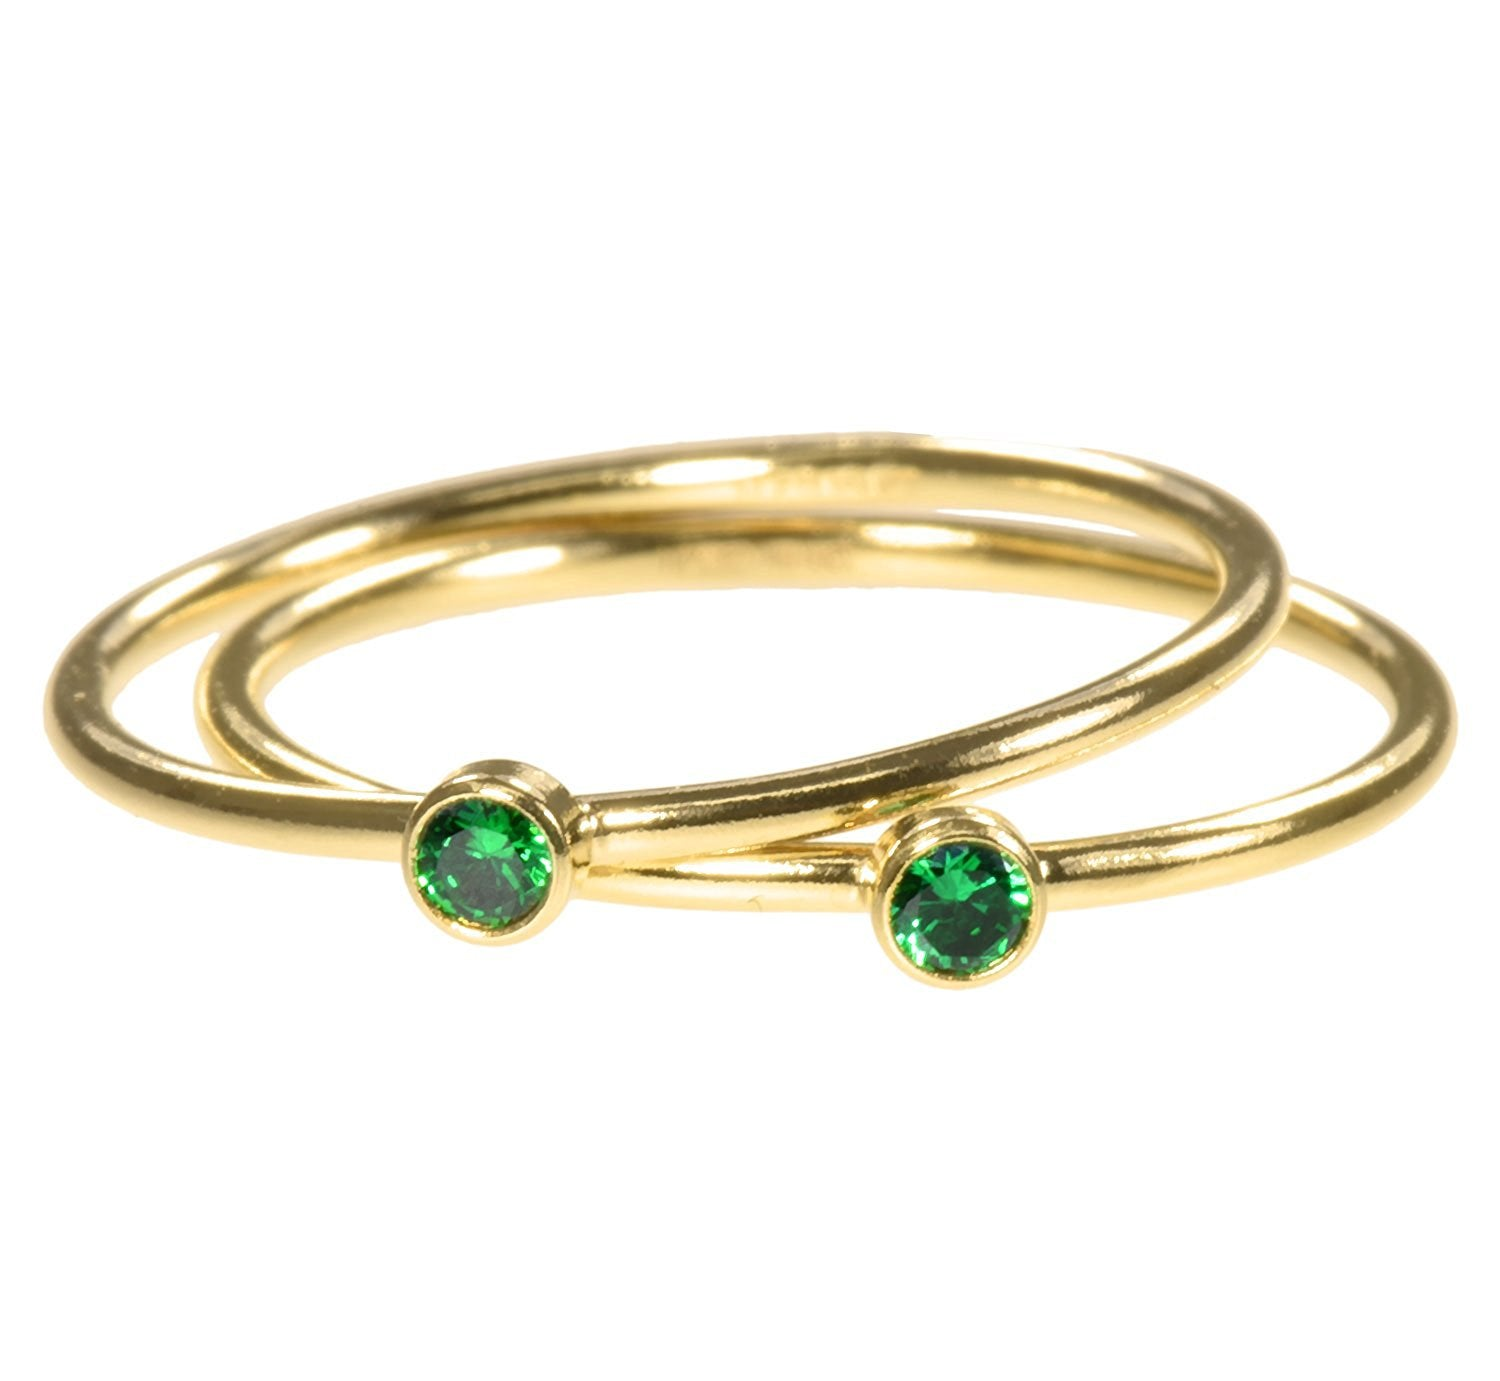 uGems 2 14K Gold Filled Green CZ Stacking Rings Size 5